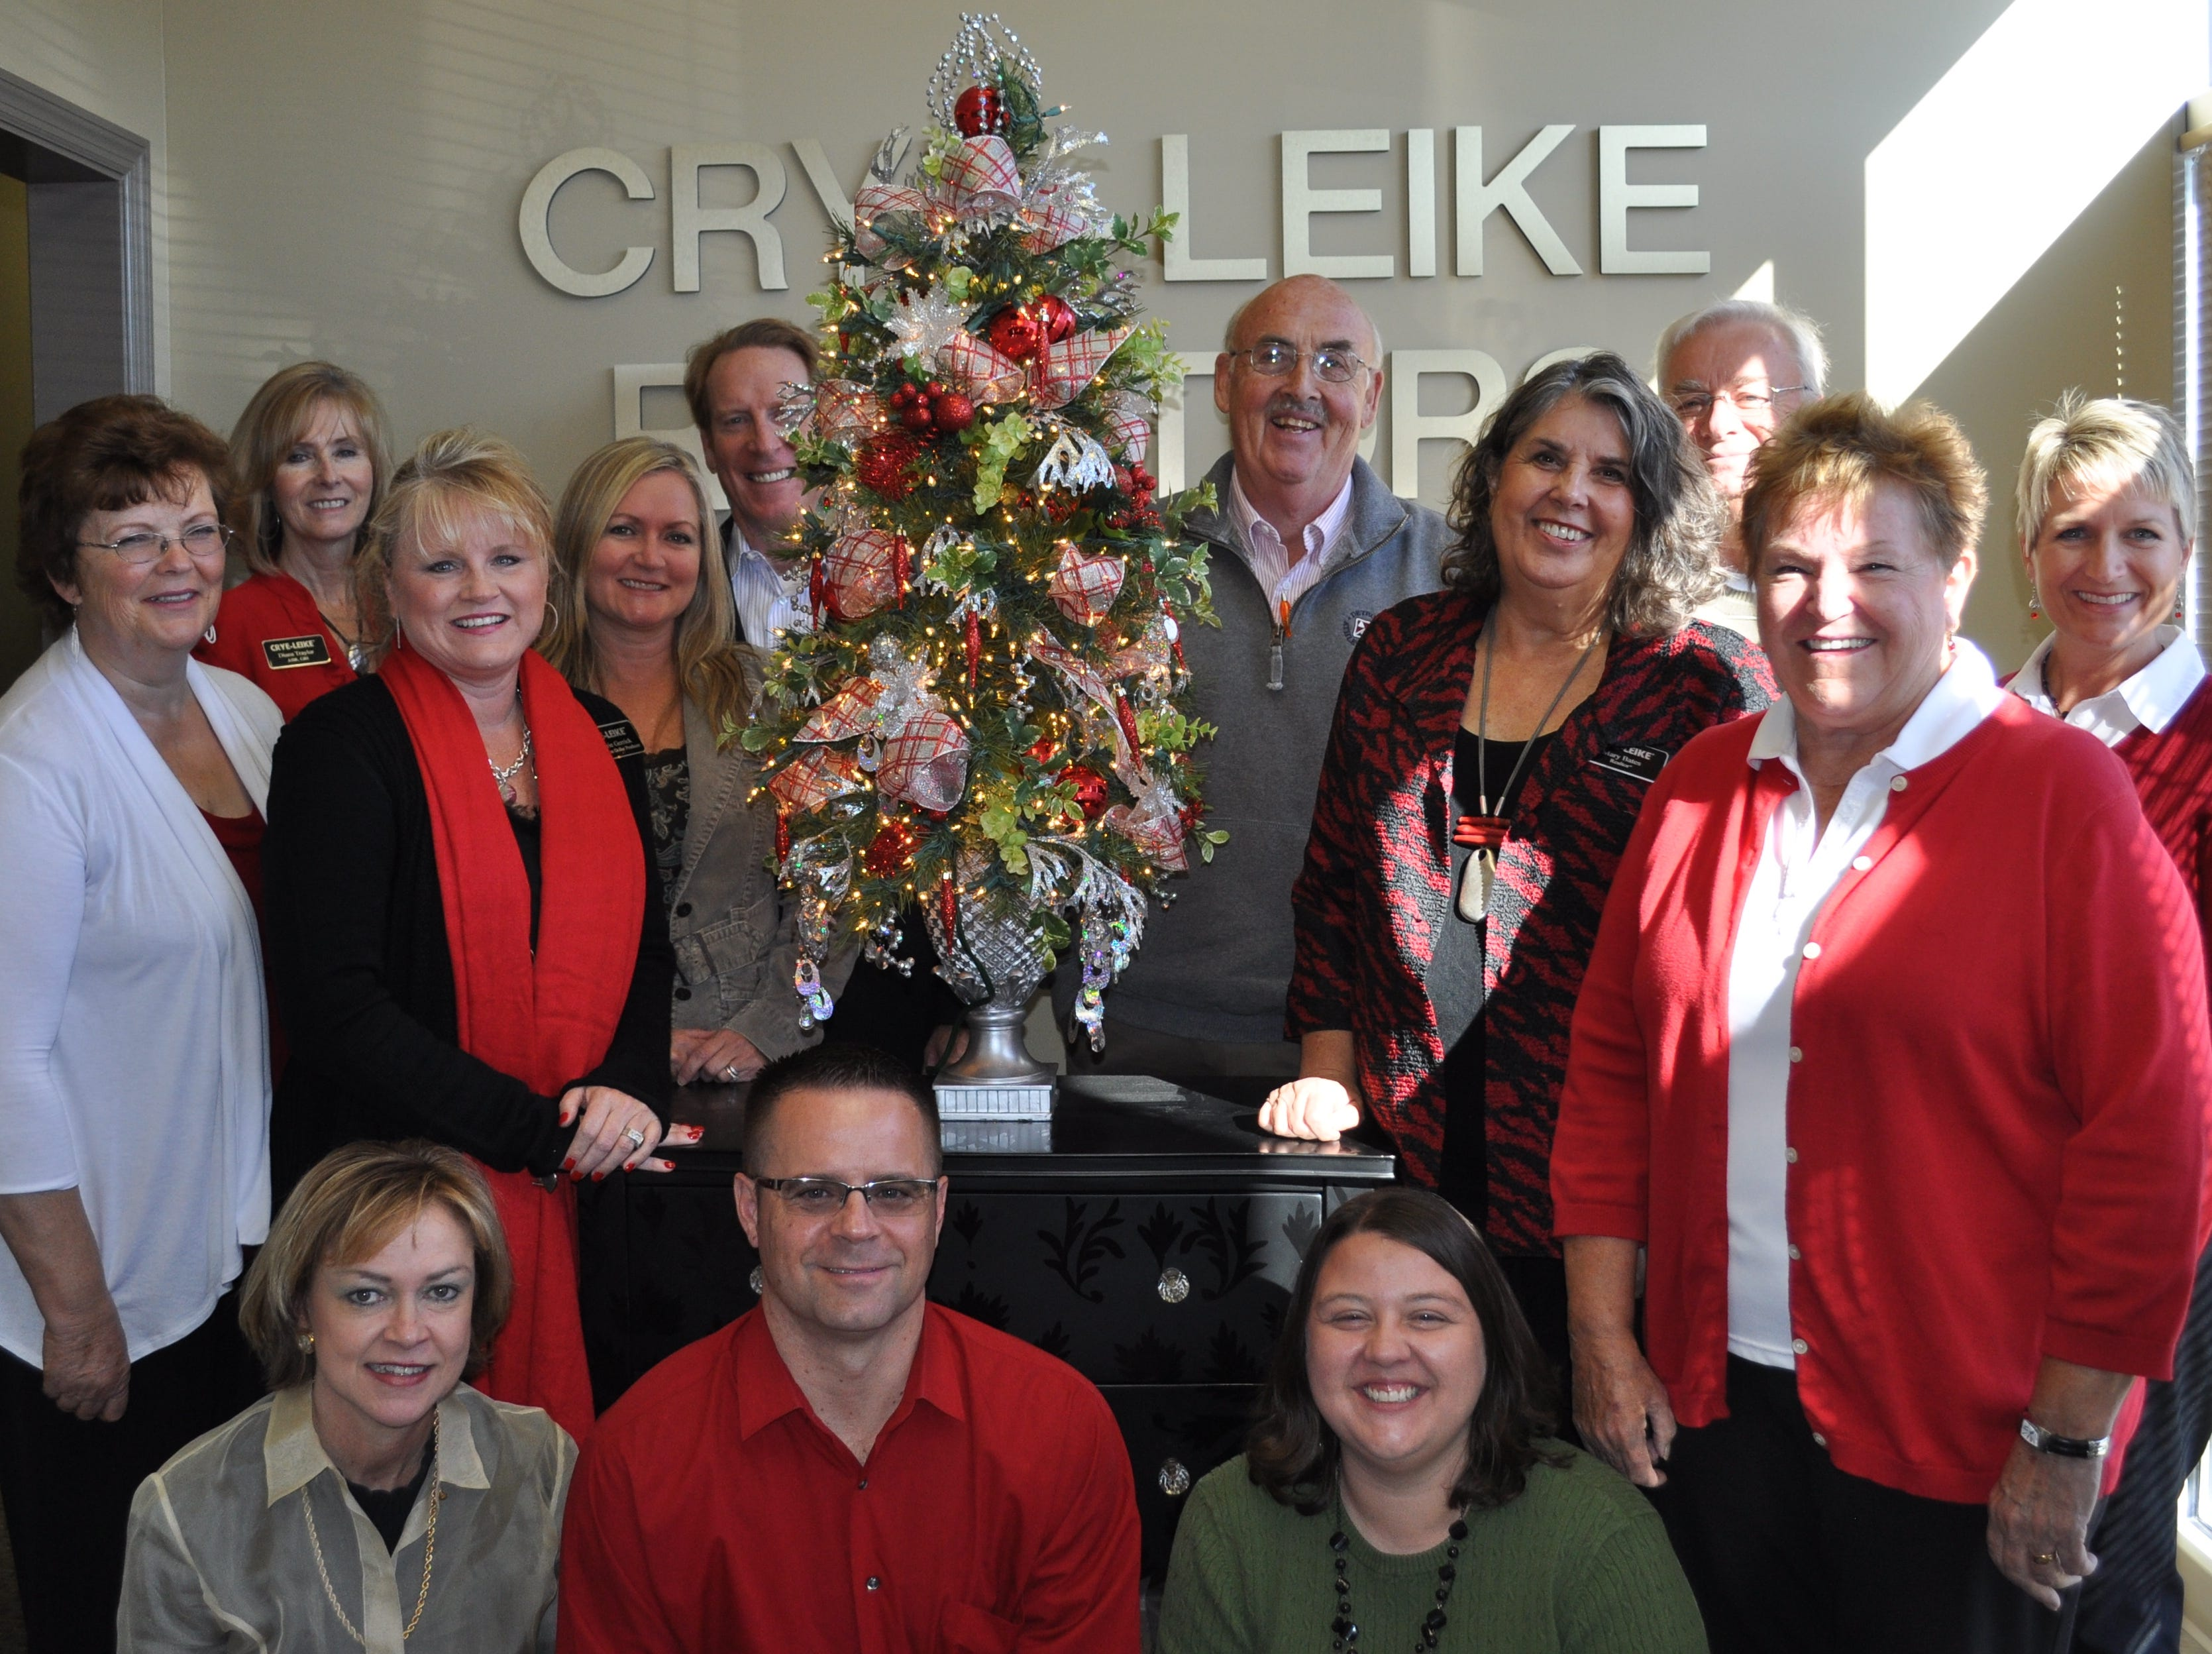 Crye-Leike Realty has donated and decorated a tree that will be sold to raise funds for the Fantasy of Trees. Realty agents are, first row, from left, Anita Vines, David Gibson, Office Administrator Cassie Riconoscuito; second row, Mary Coffey, Marie Gerrick, Jamie Seal, Mary Bates, Lynn Brown, Melonie Carideo; third row, Diana Traylor, Michael Swenor, Jere Krieg and Bob Warner.